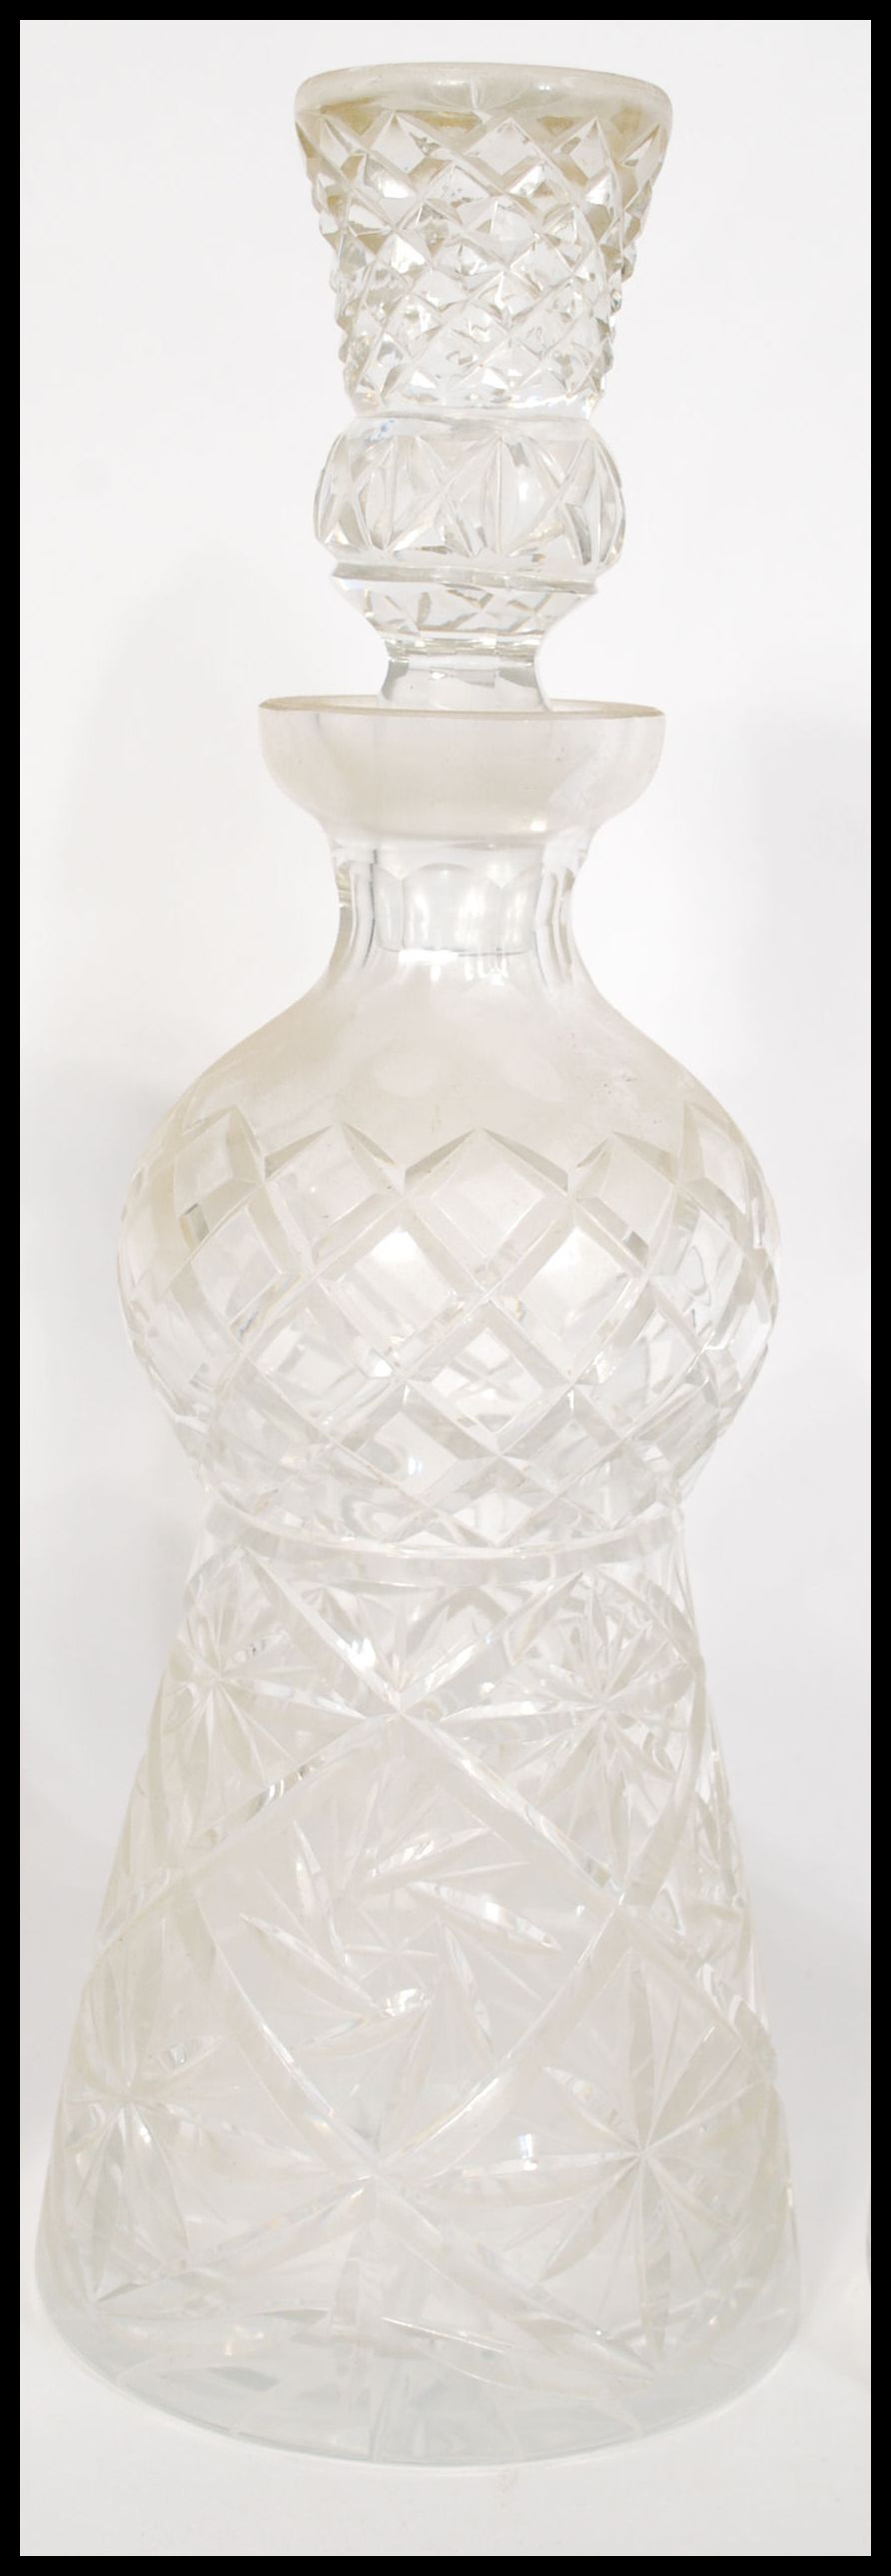 Lot 8 - A group of three vintage cut glass decanters to include a thistle shaped decanter with thistle